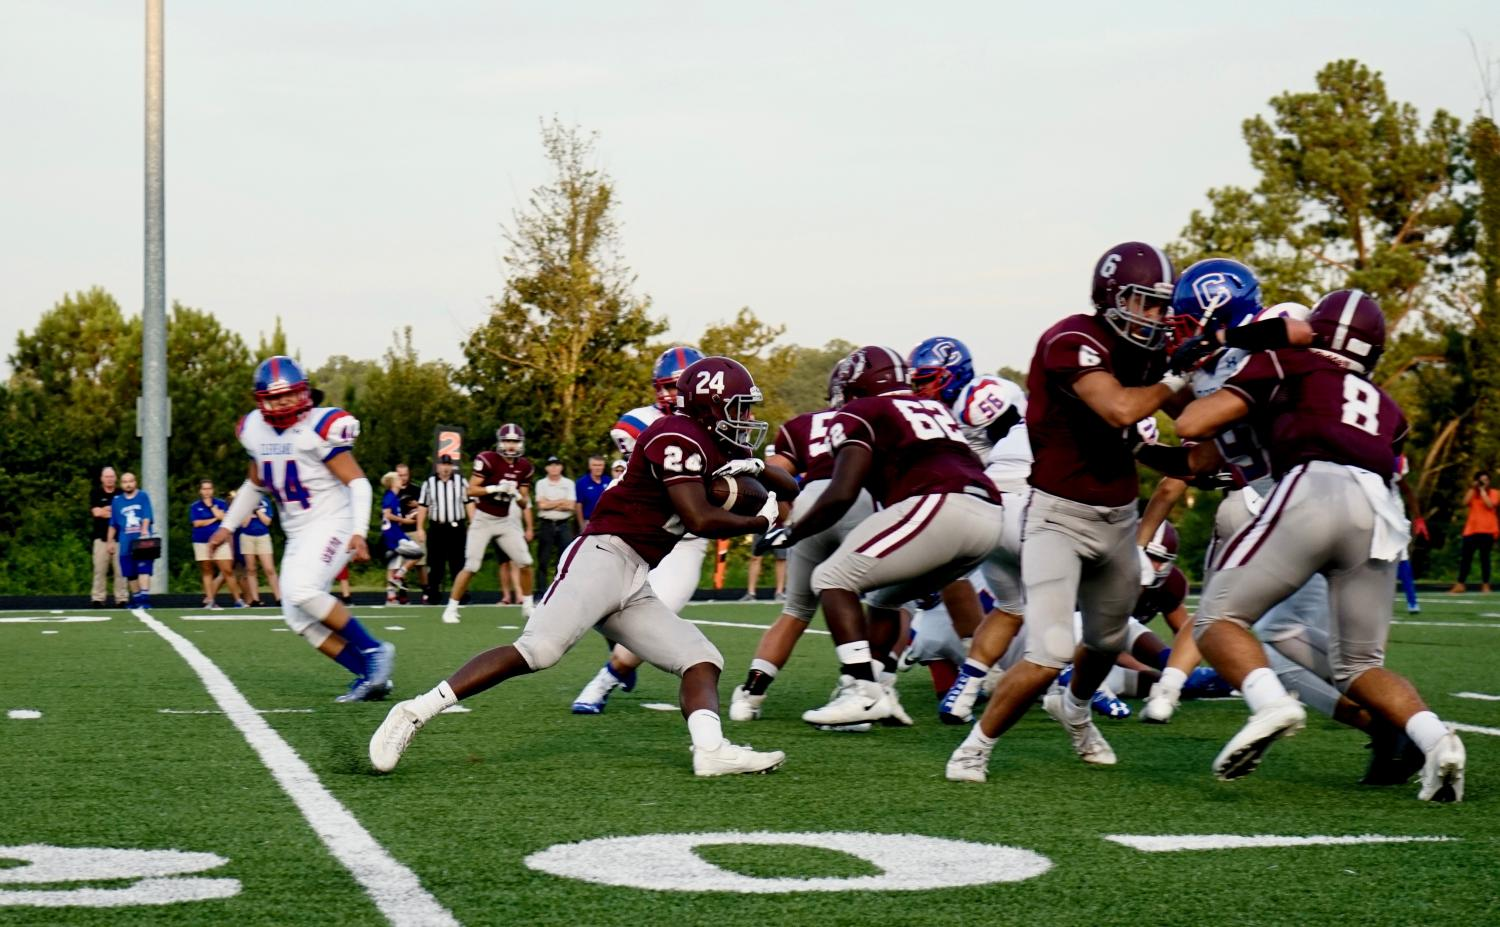 Bearden's running game has improved as the season has progressed, highlighted by DJ Cox's 117 rushing yards last week against South Doyle.